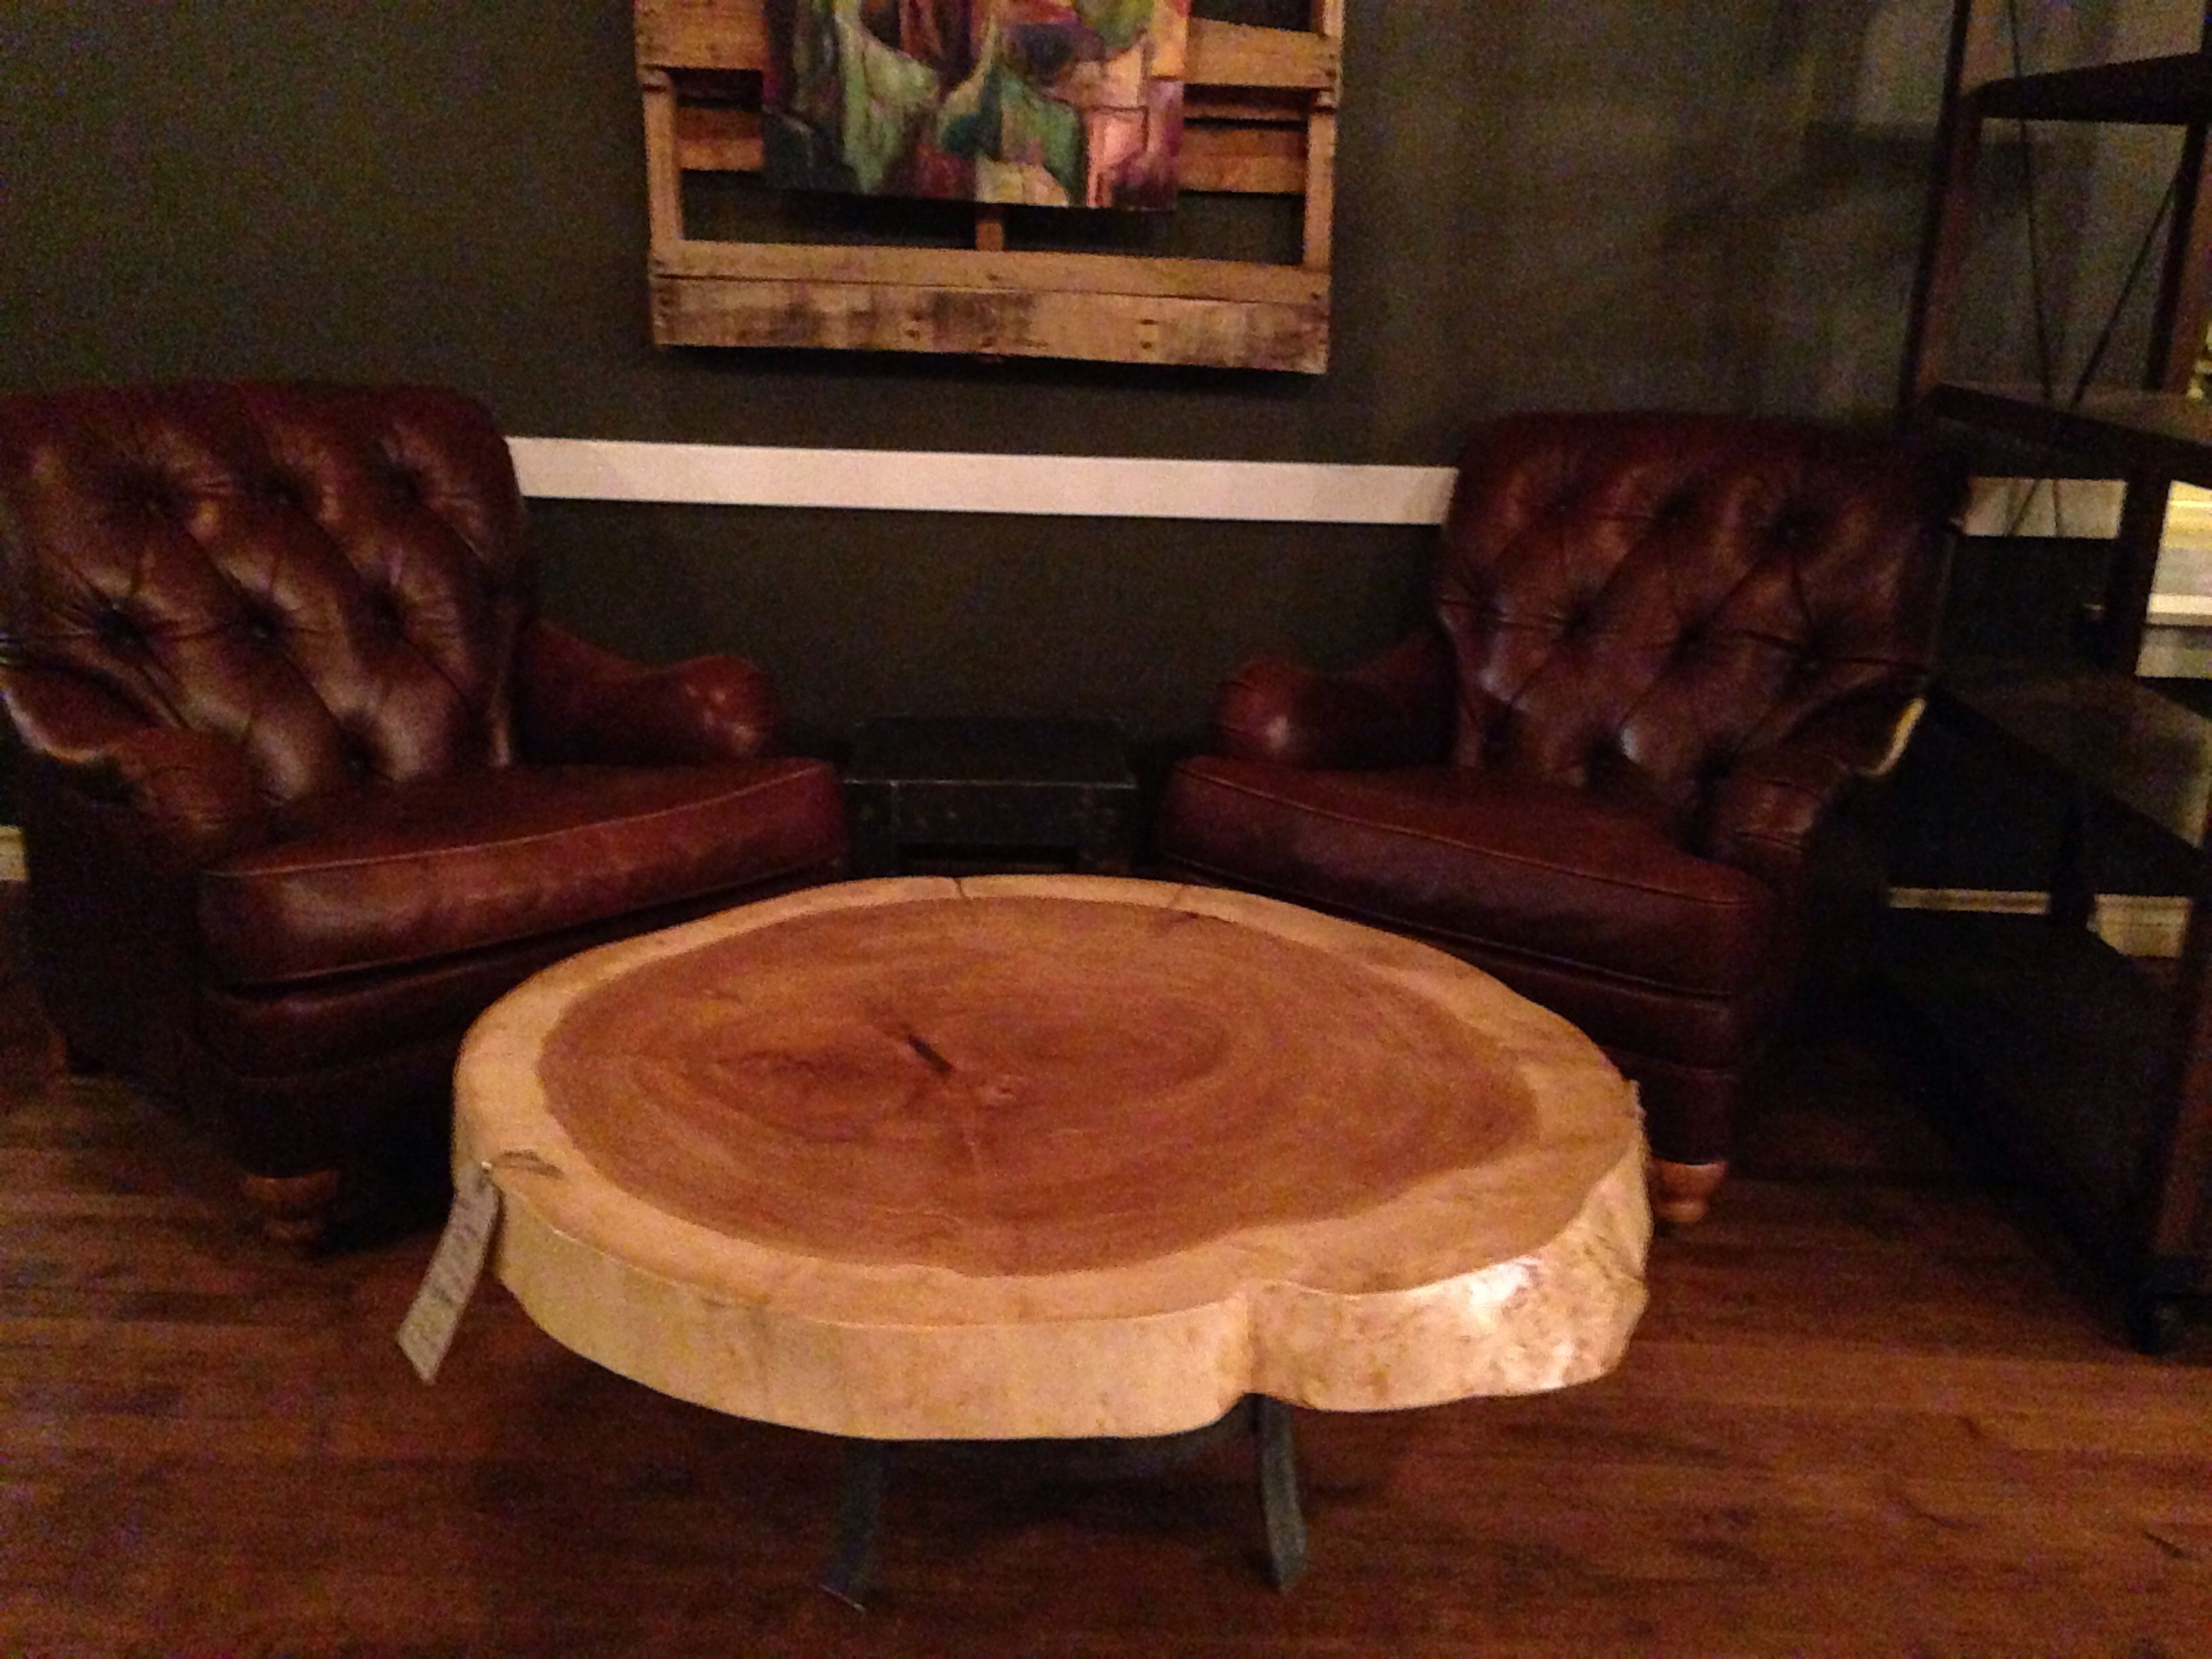 46inch Ash Coffee Table For Sale At Coffea On Phillips